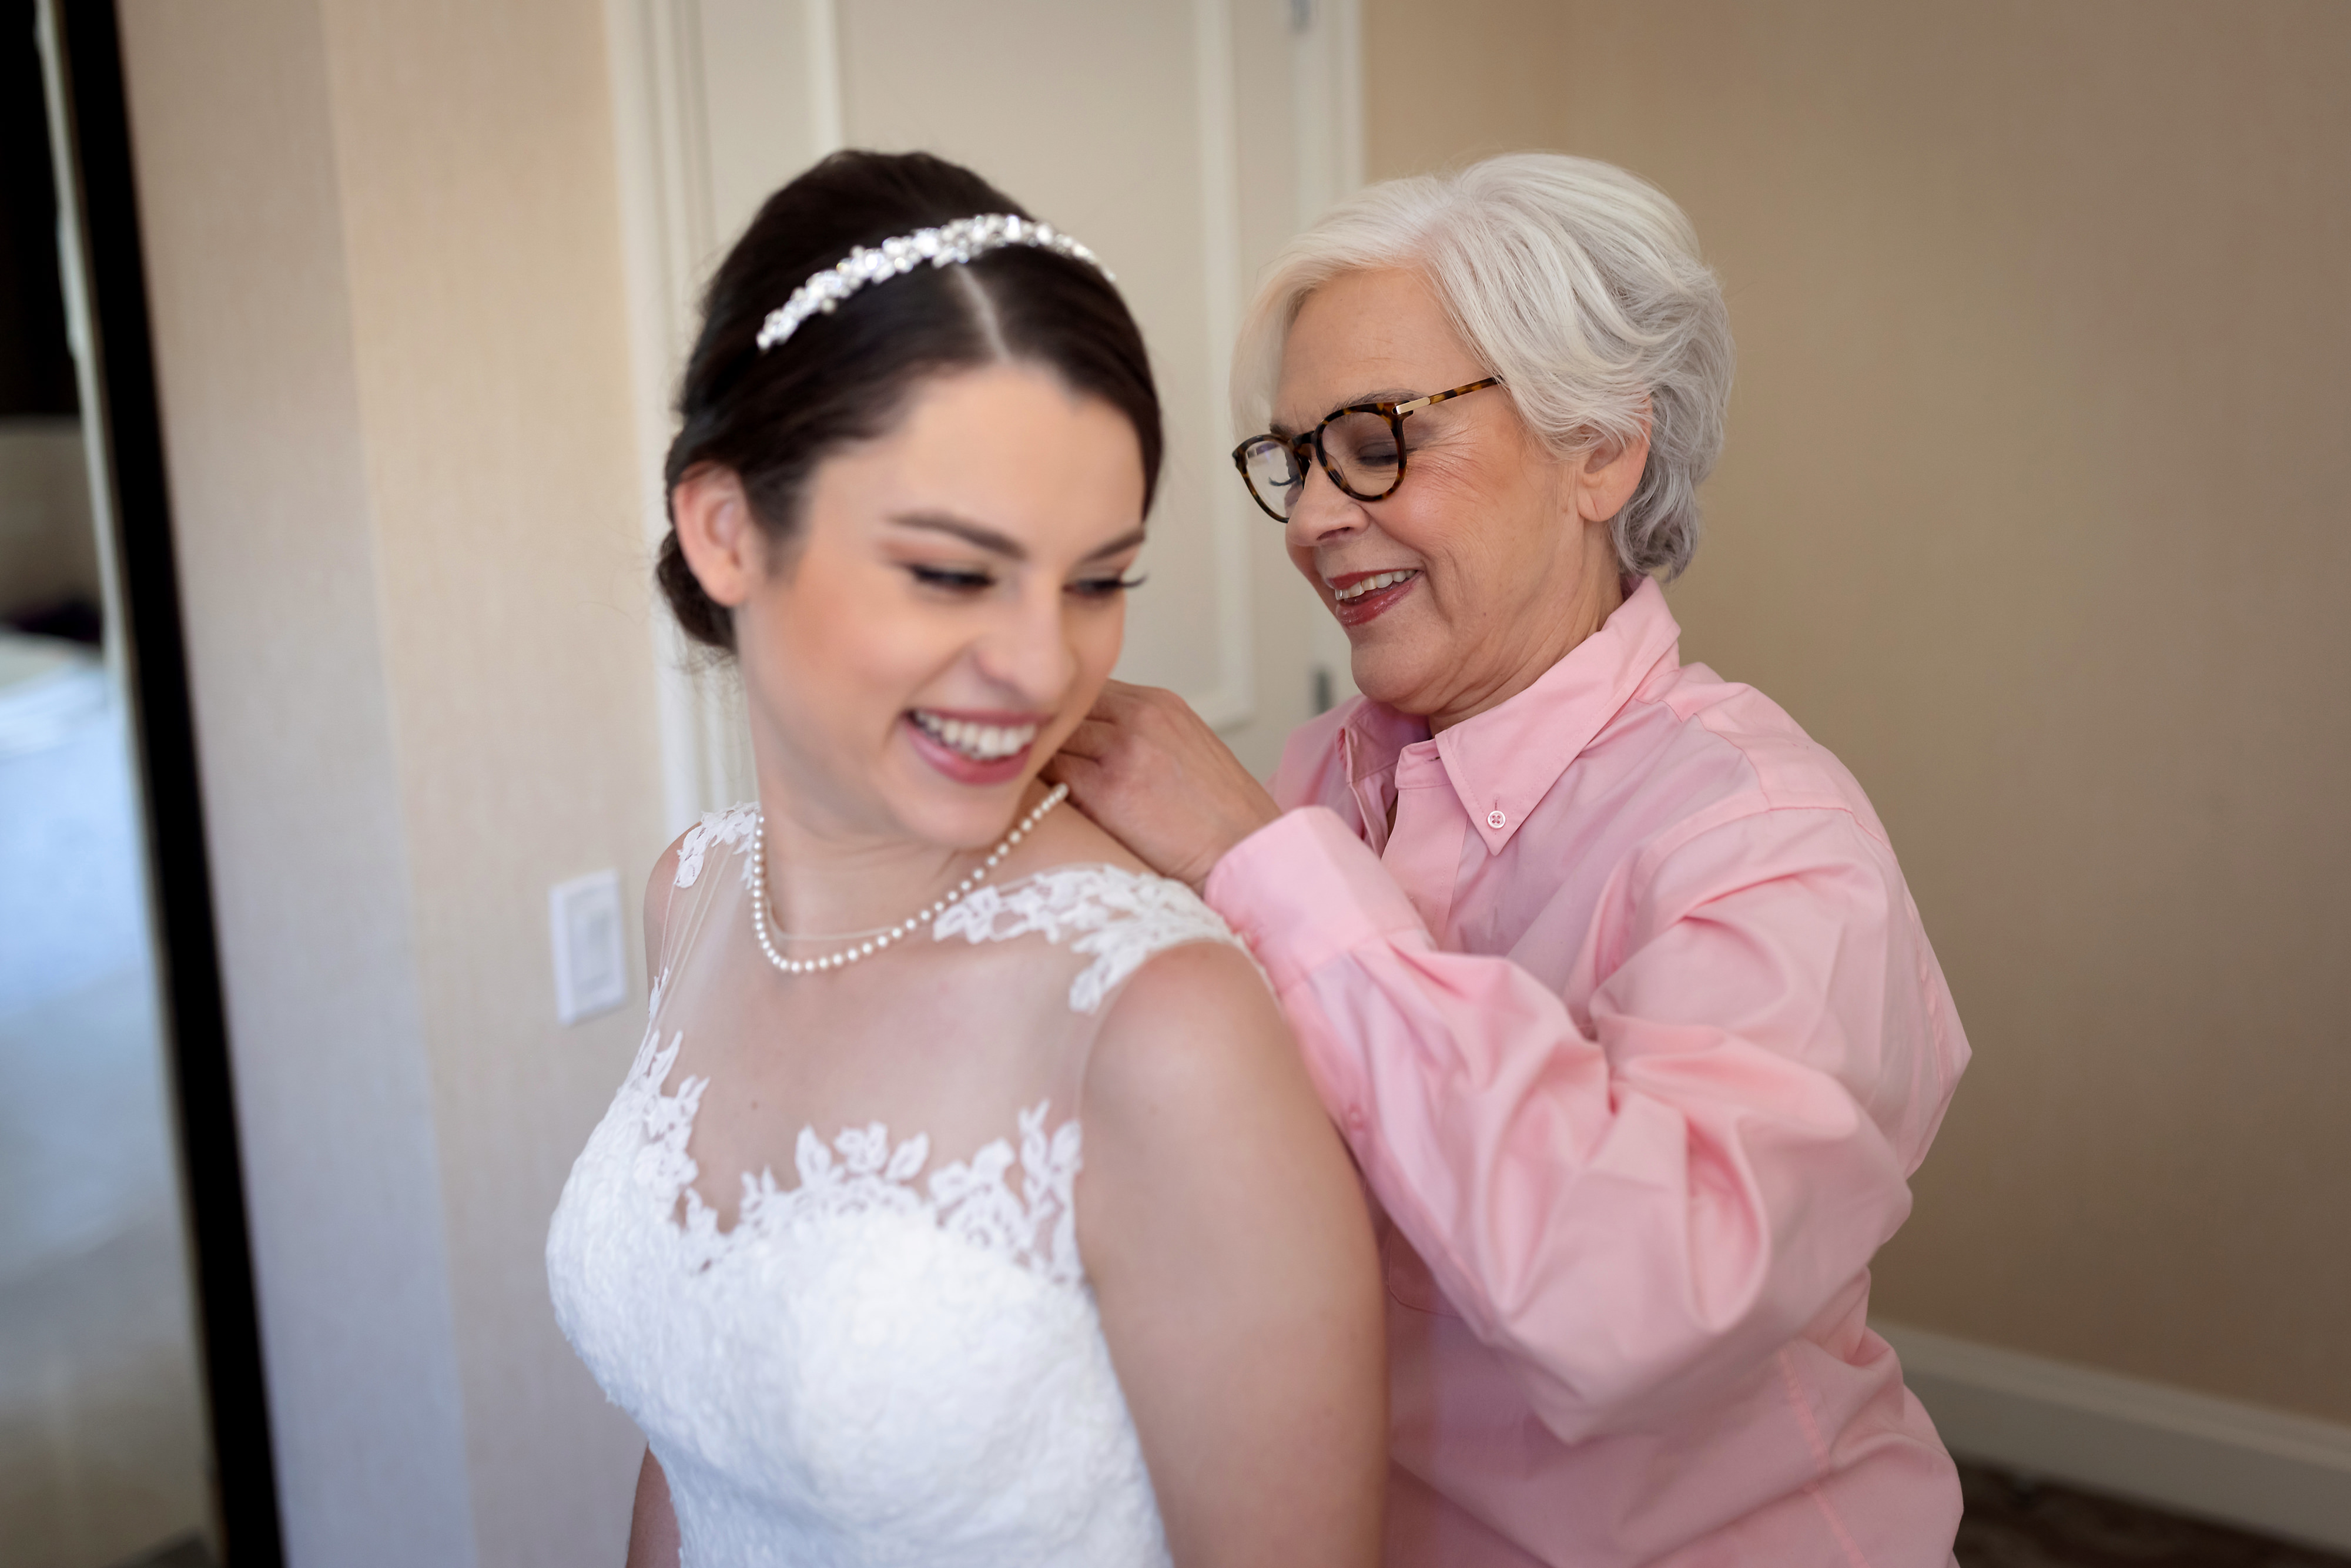 Mom helps bride put on necklace while getting ready for wedding